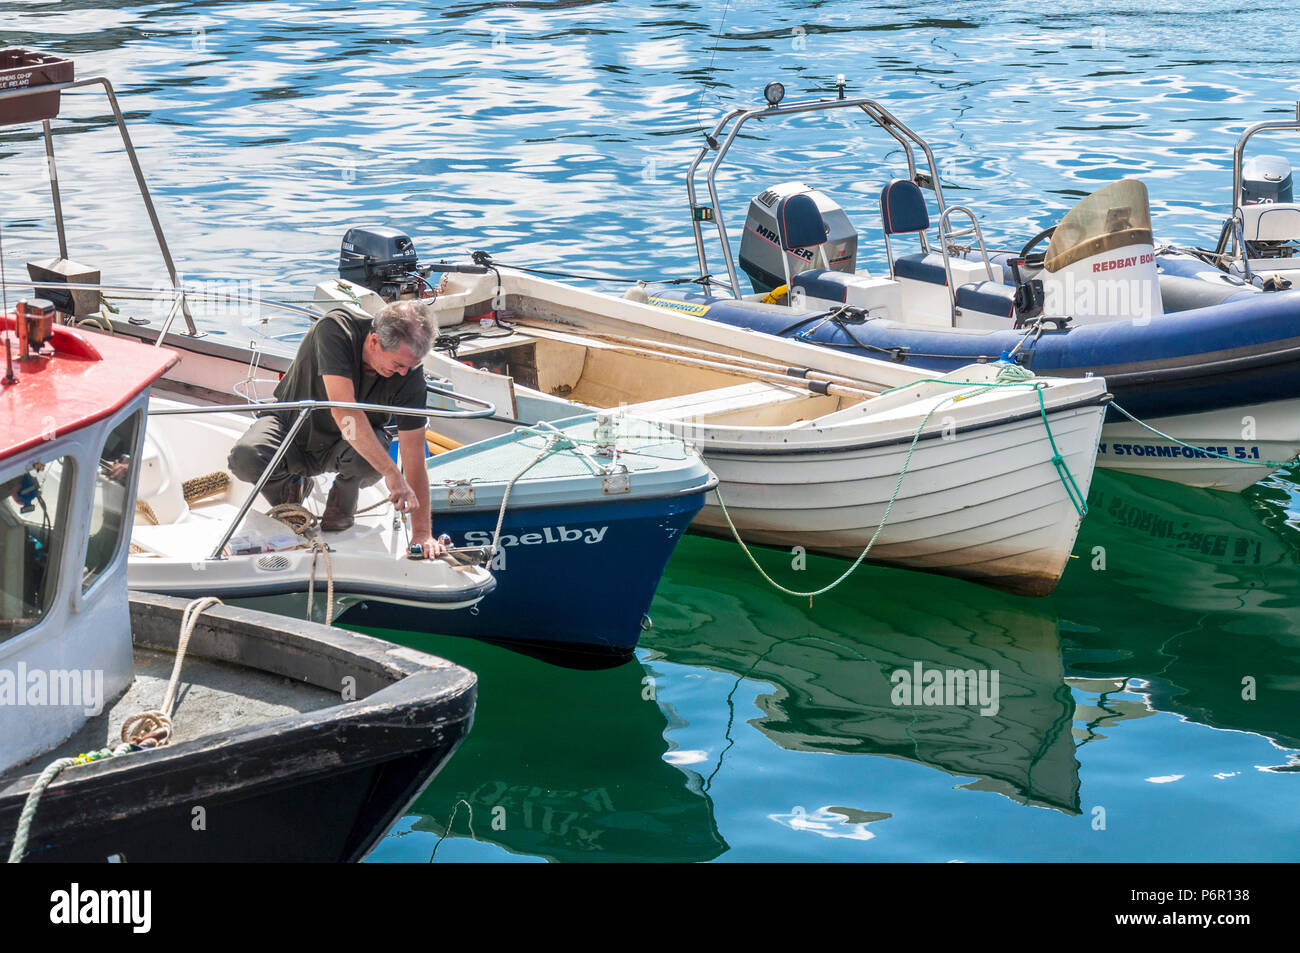 Burtonport, County Donegal, Ireland weather. 2nd July 2018. The warm weather continues with a cooling breeze in the harbour on Ireland's north-west coast. A man takes advantage of the hot day to fix his boat. Credit: Richard Wayman/Alamy Live News - Stock Image